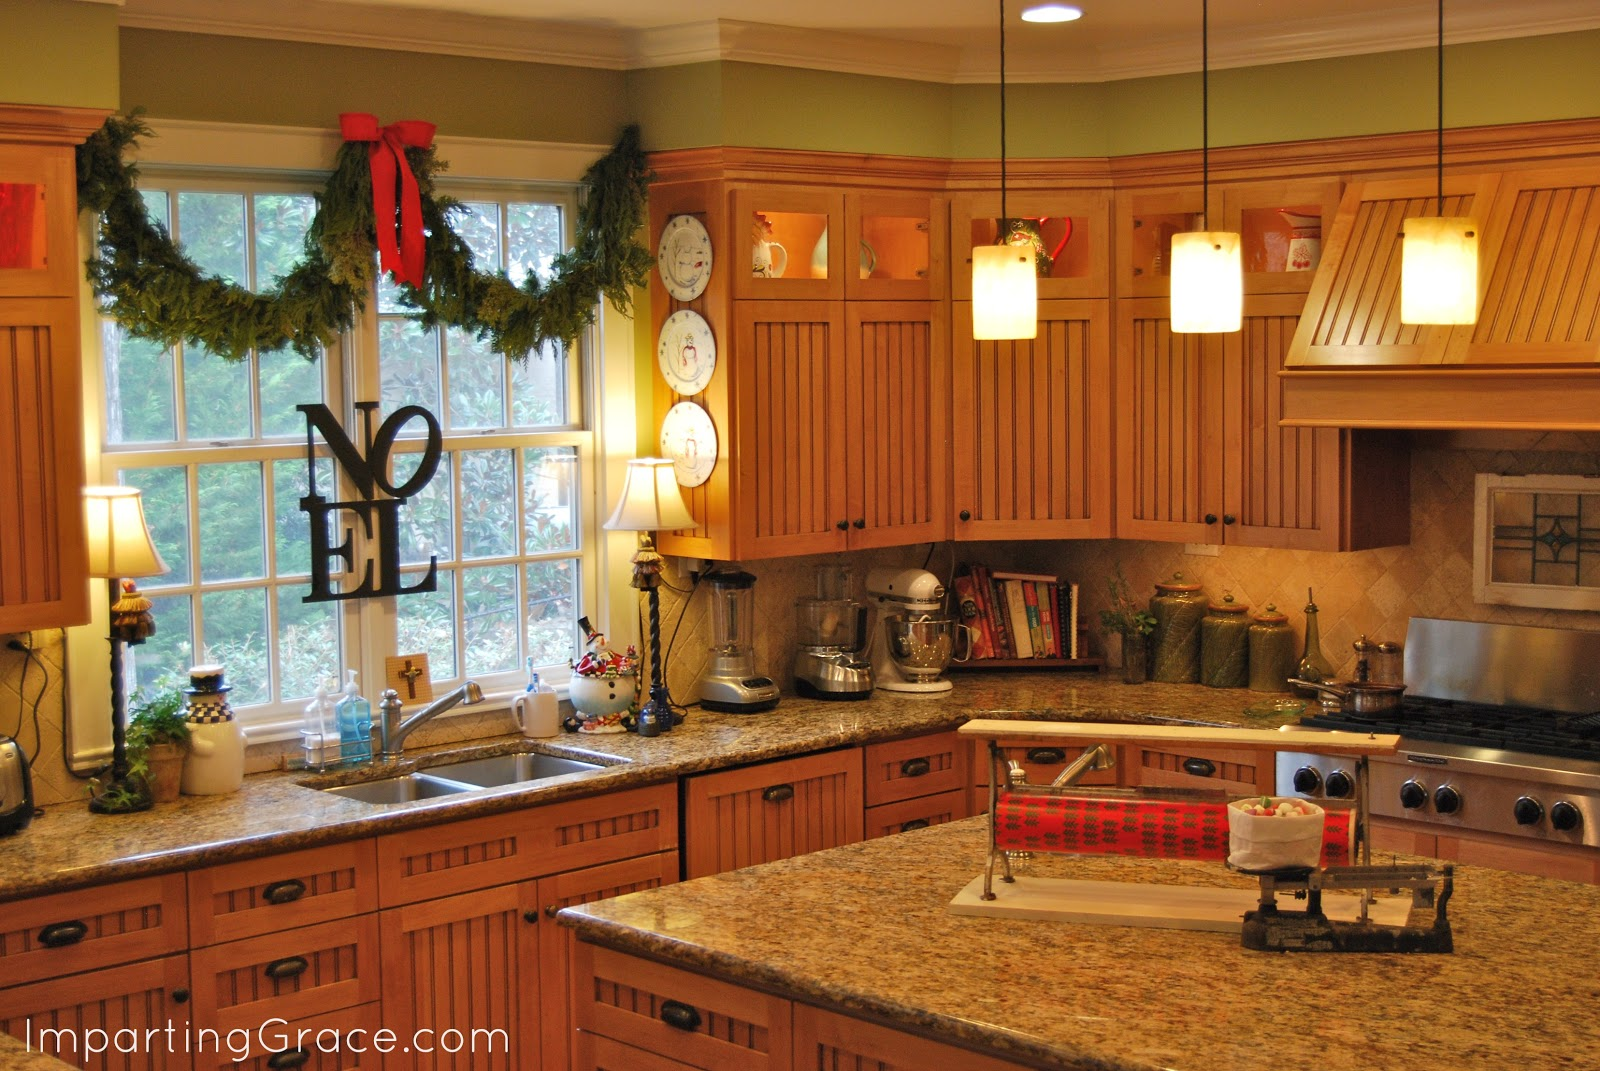 Ideas For Decorating A Kitchen Island For Christmas